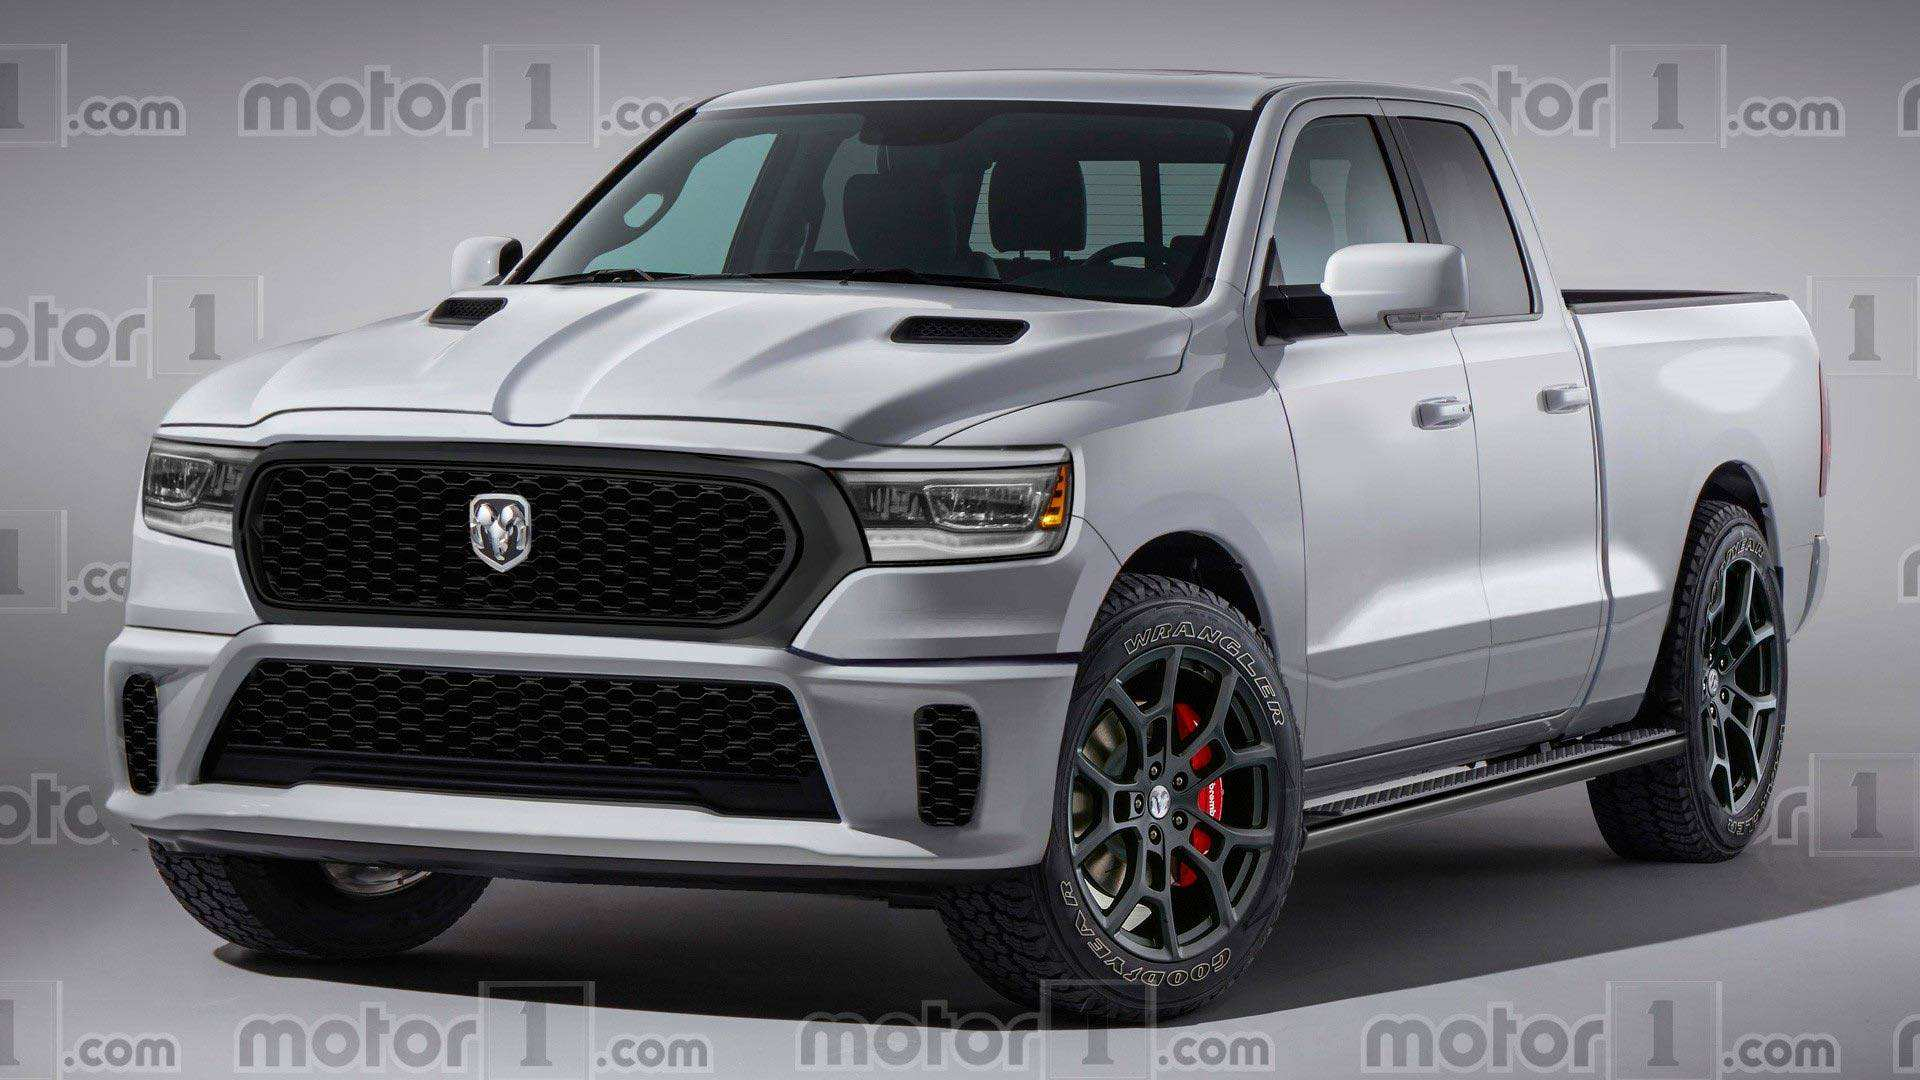 66 All New 2020 Dodge Ram For Sale Price Design and Review